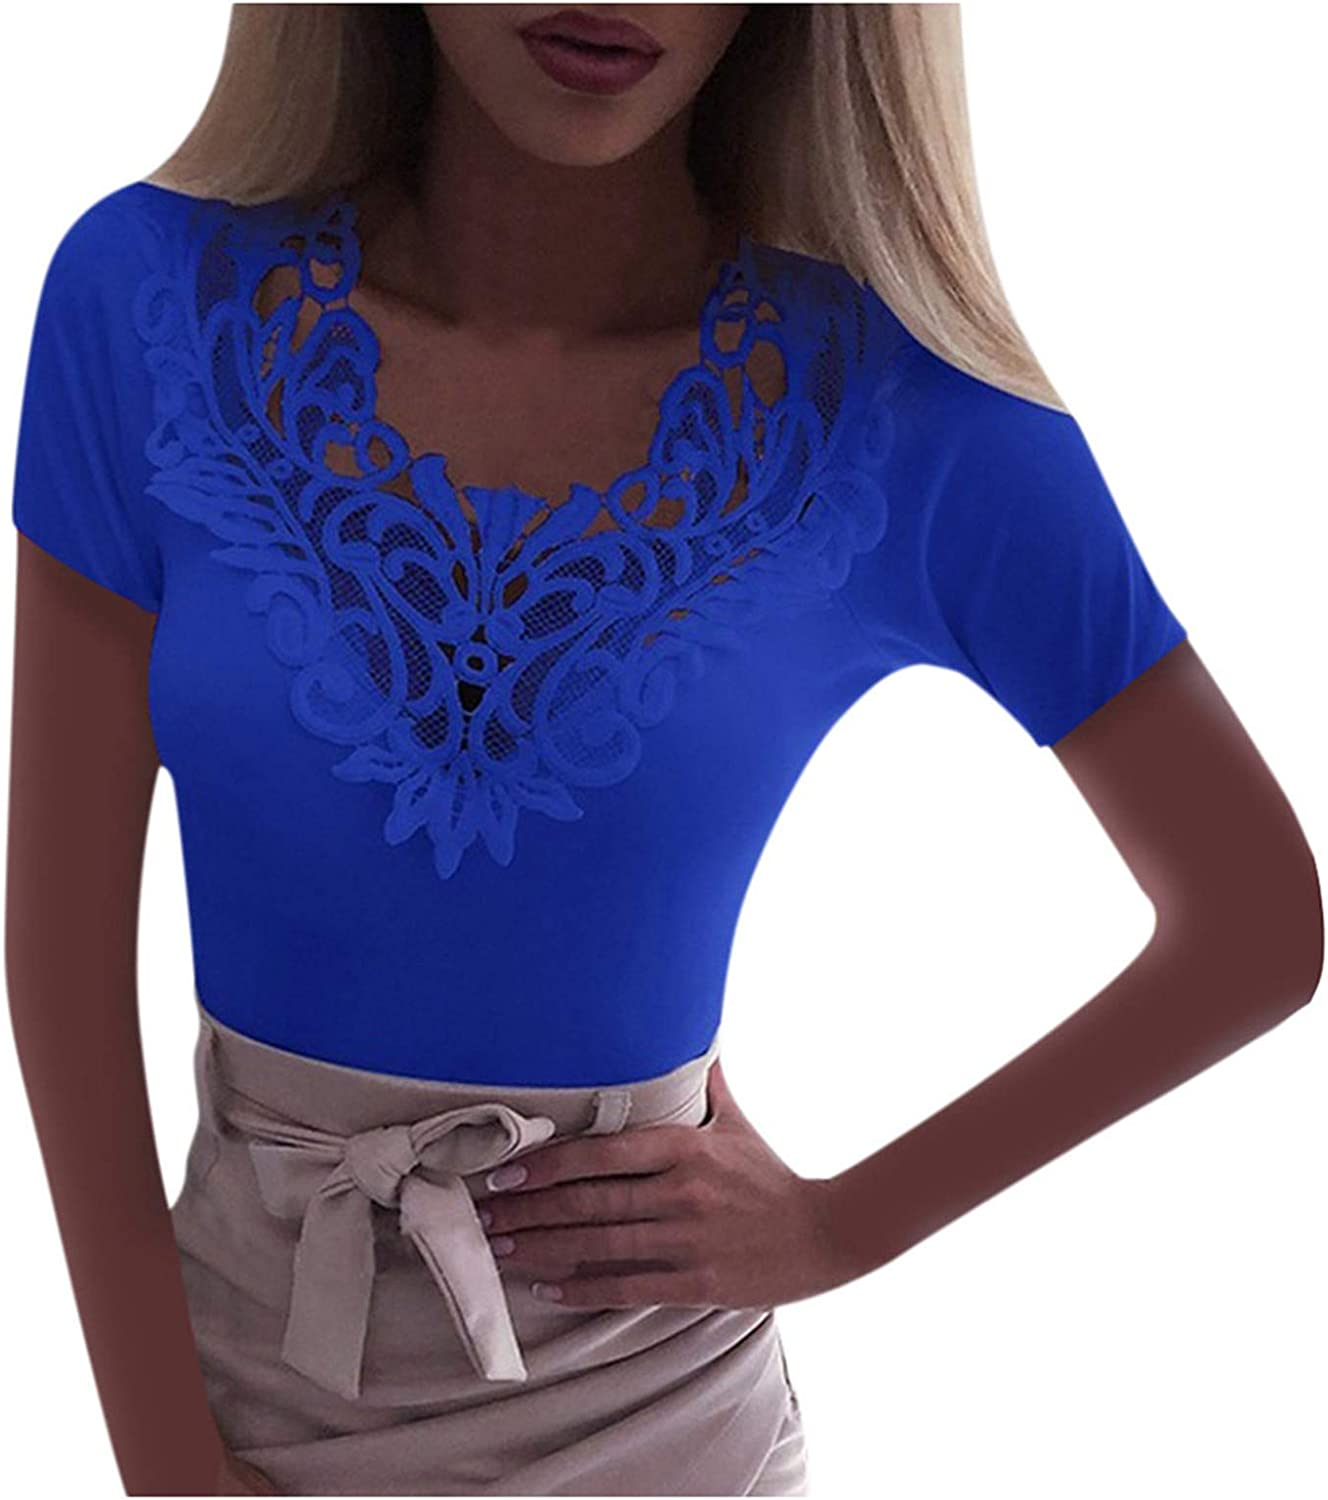 Forwelly Oversize T Shirt for Women Short Sleeve Trendy Plain Lace Patchwork V Neck Tee Shirt Slim Fit Basic Top Blouse